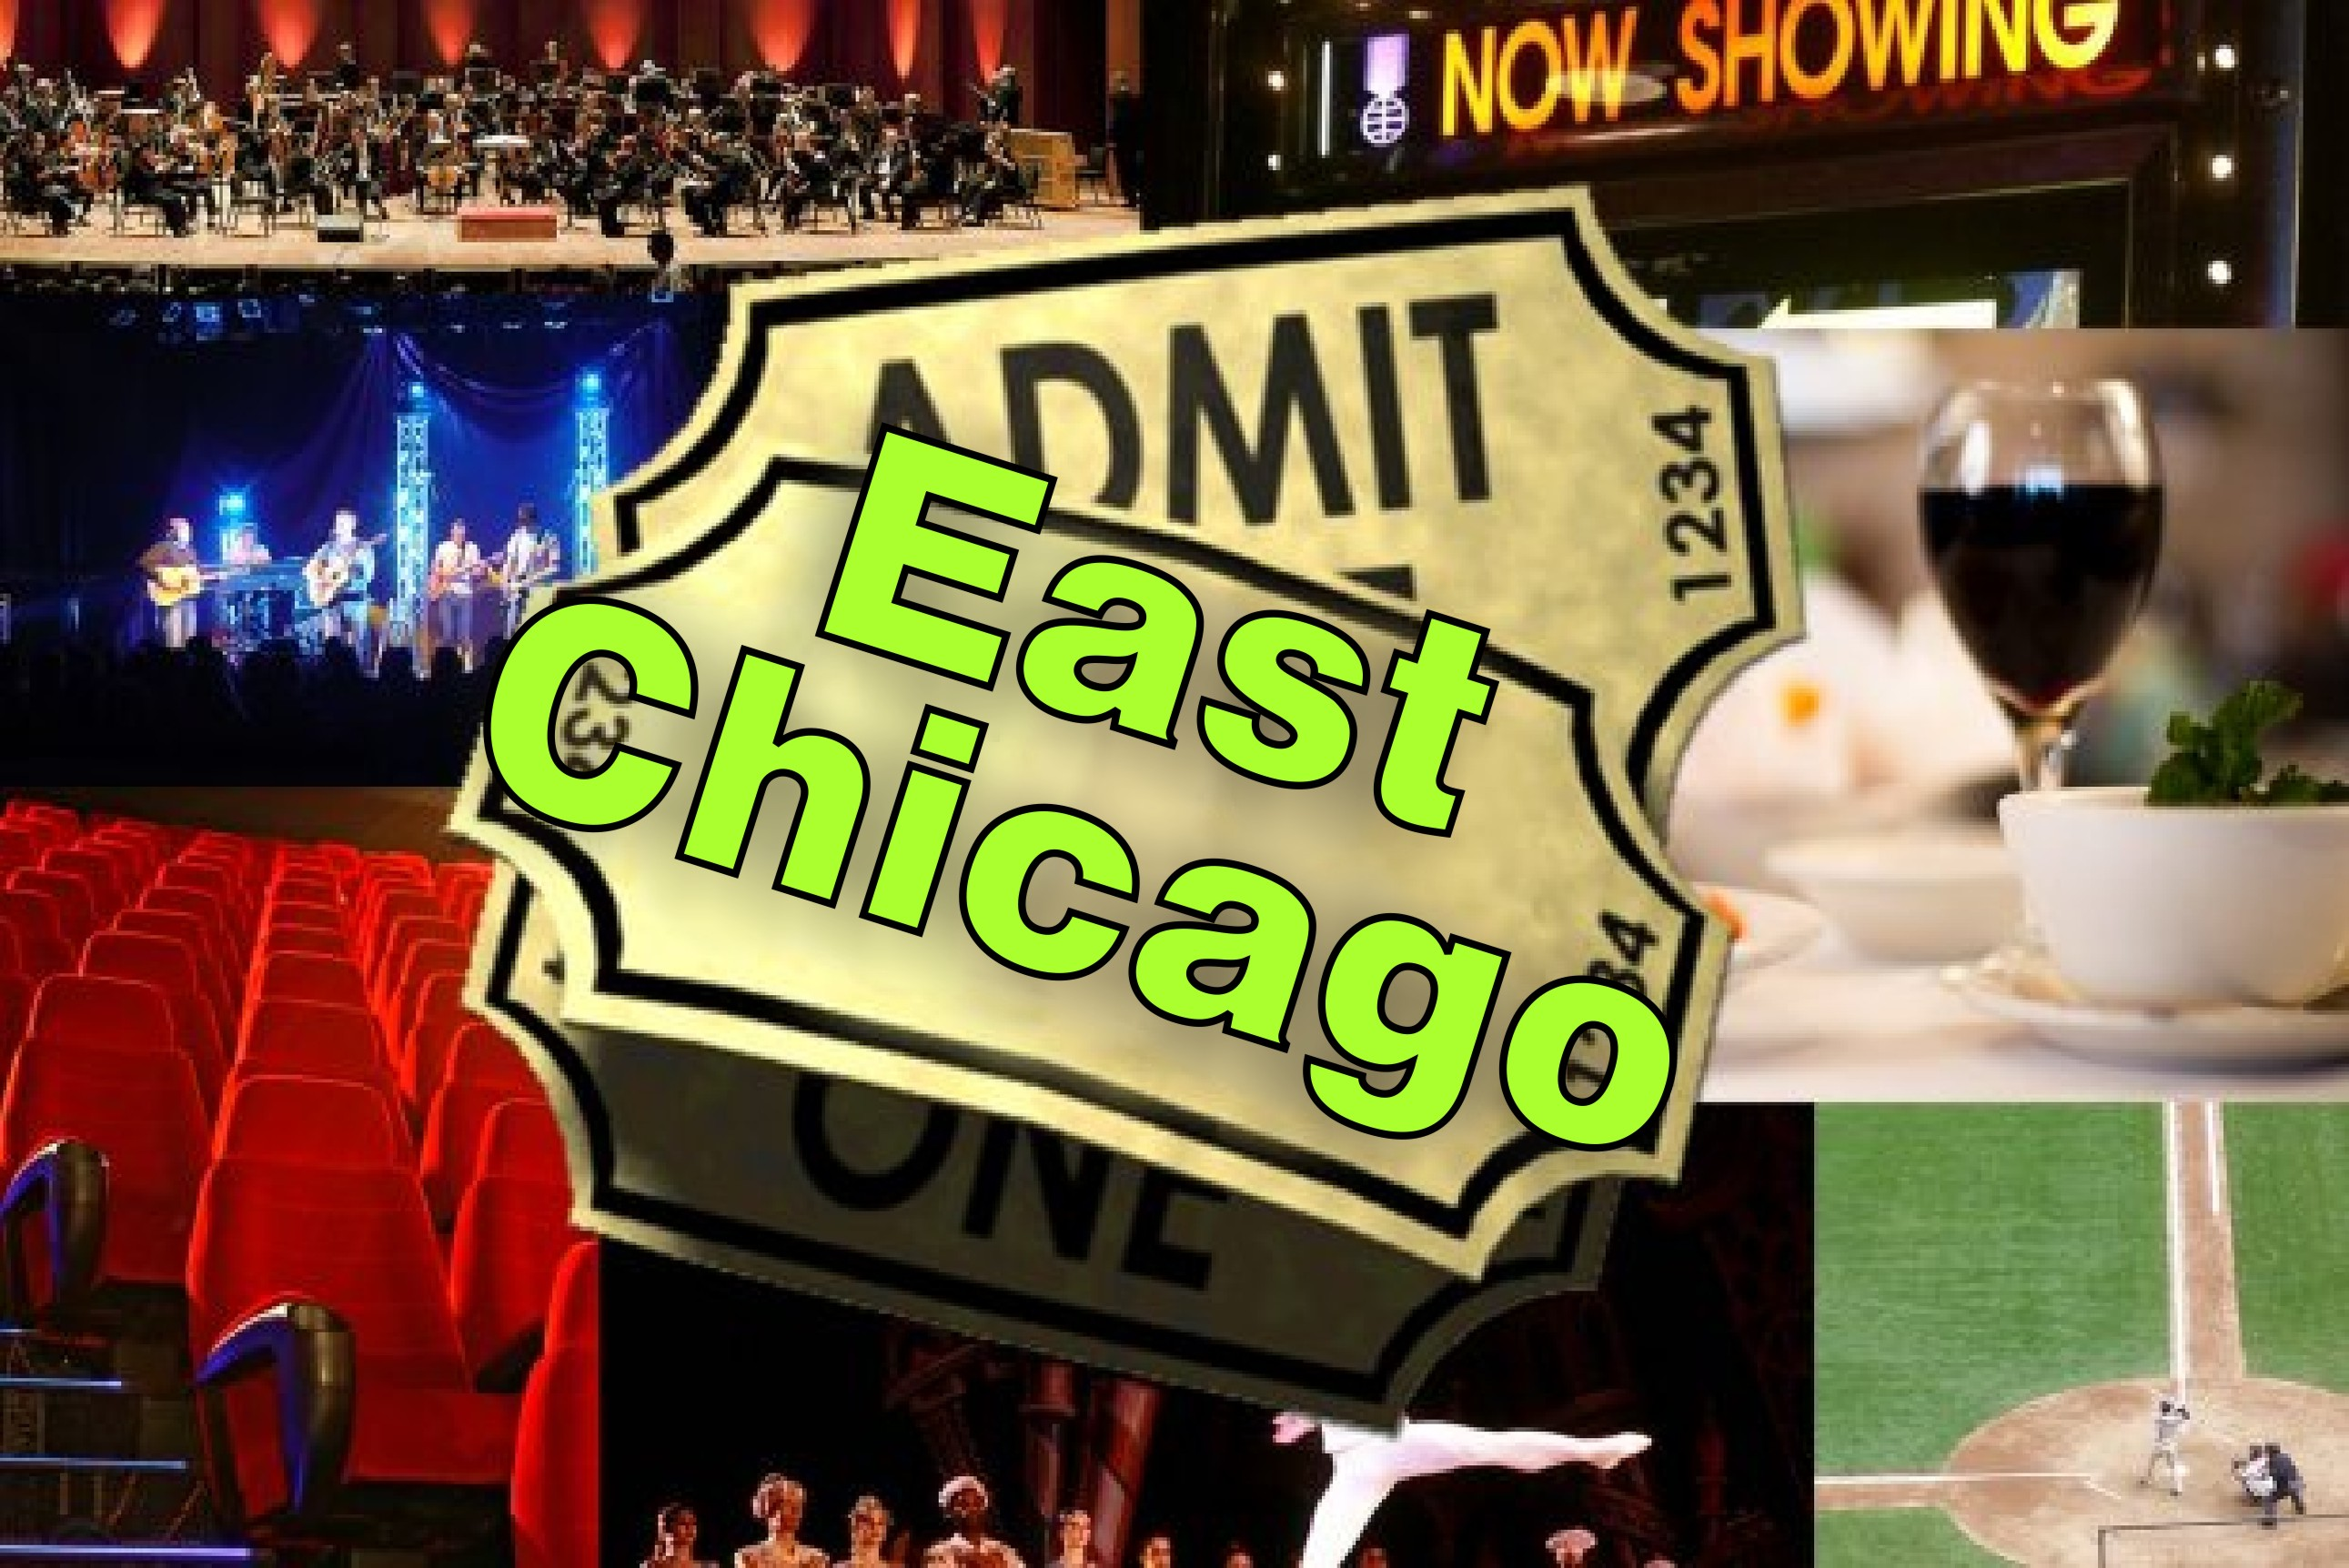 things to do festivals events calendar East Chicago indiana